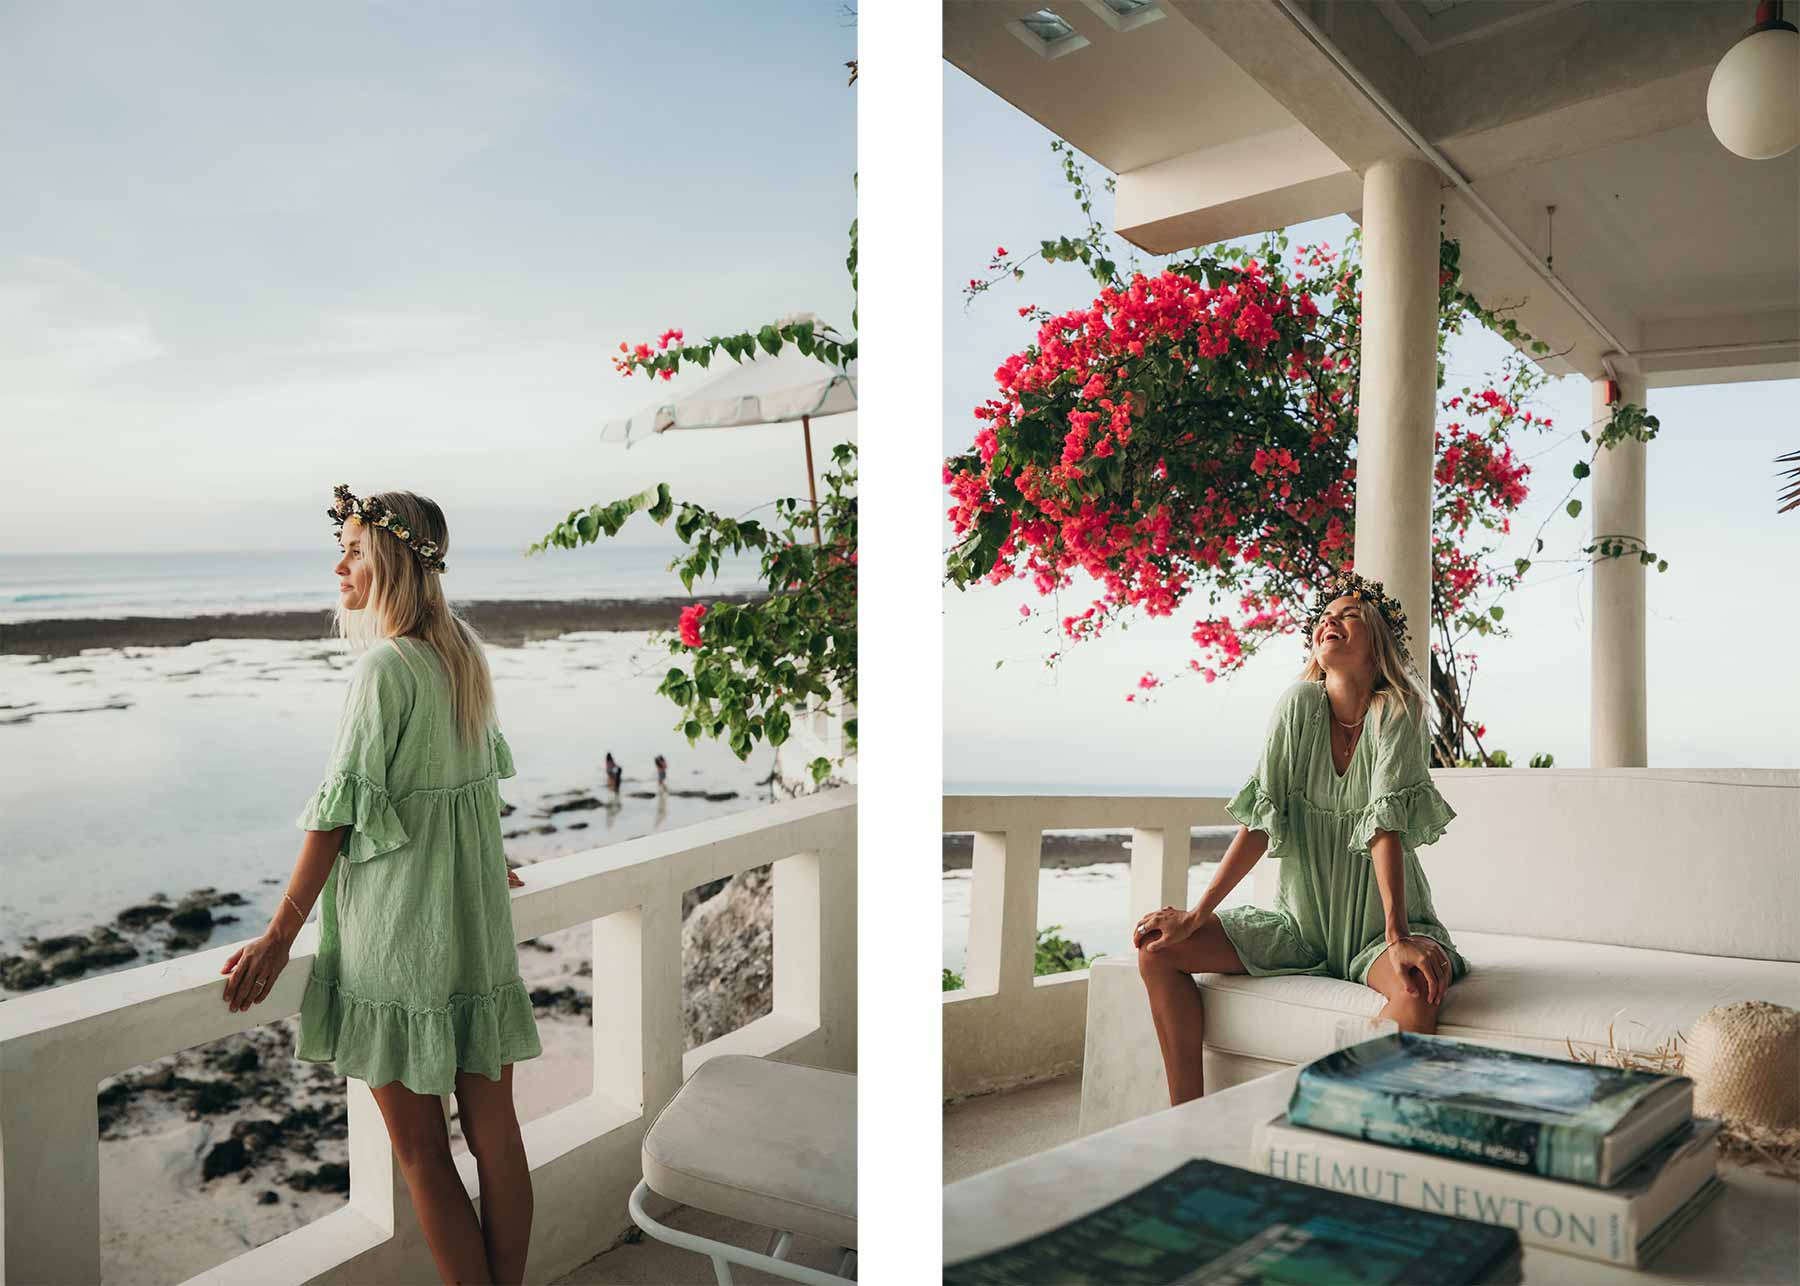 ROVE_MAJA_pistachio_green_cotton_gauze_summer_dress_breezy